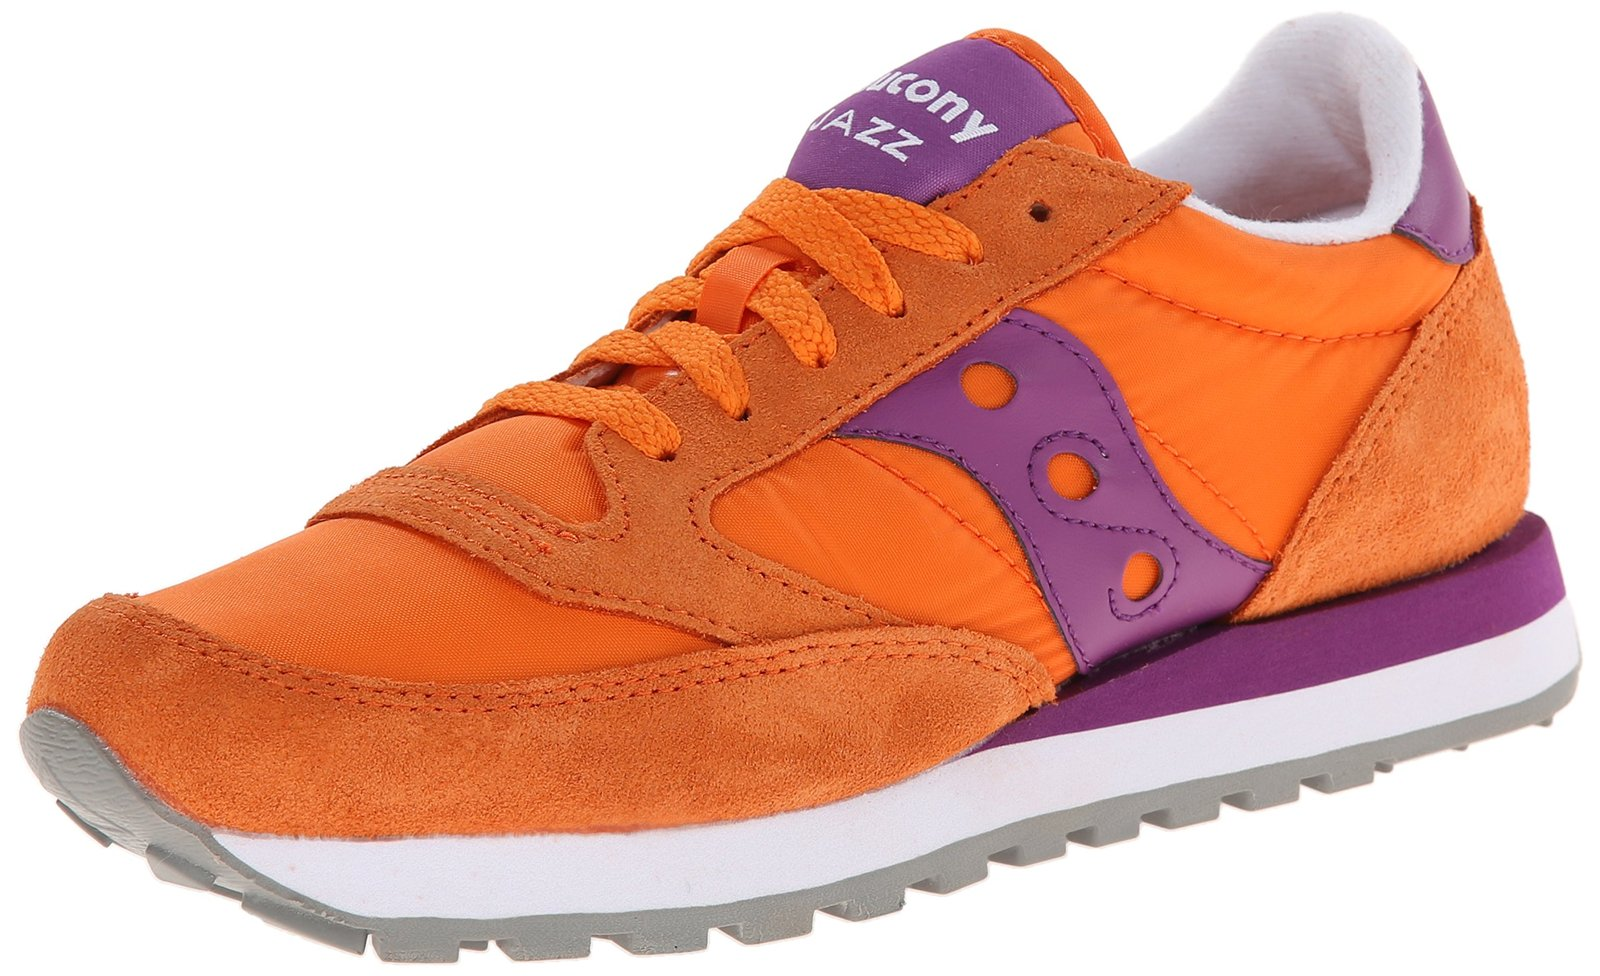 Saucony Originals Women's Jazz Original Fashion Sneaker,Orange/Purple, 5 M US